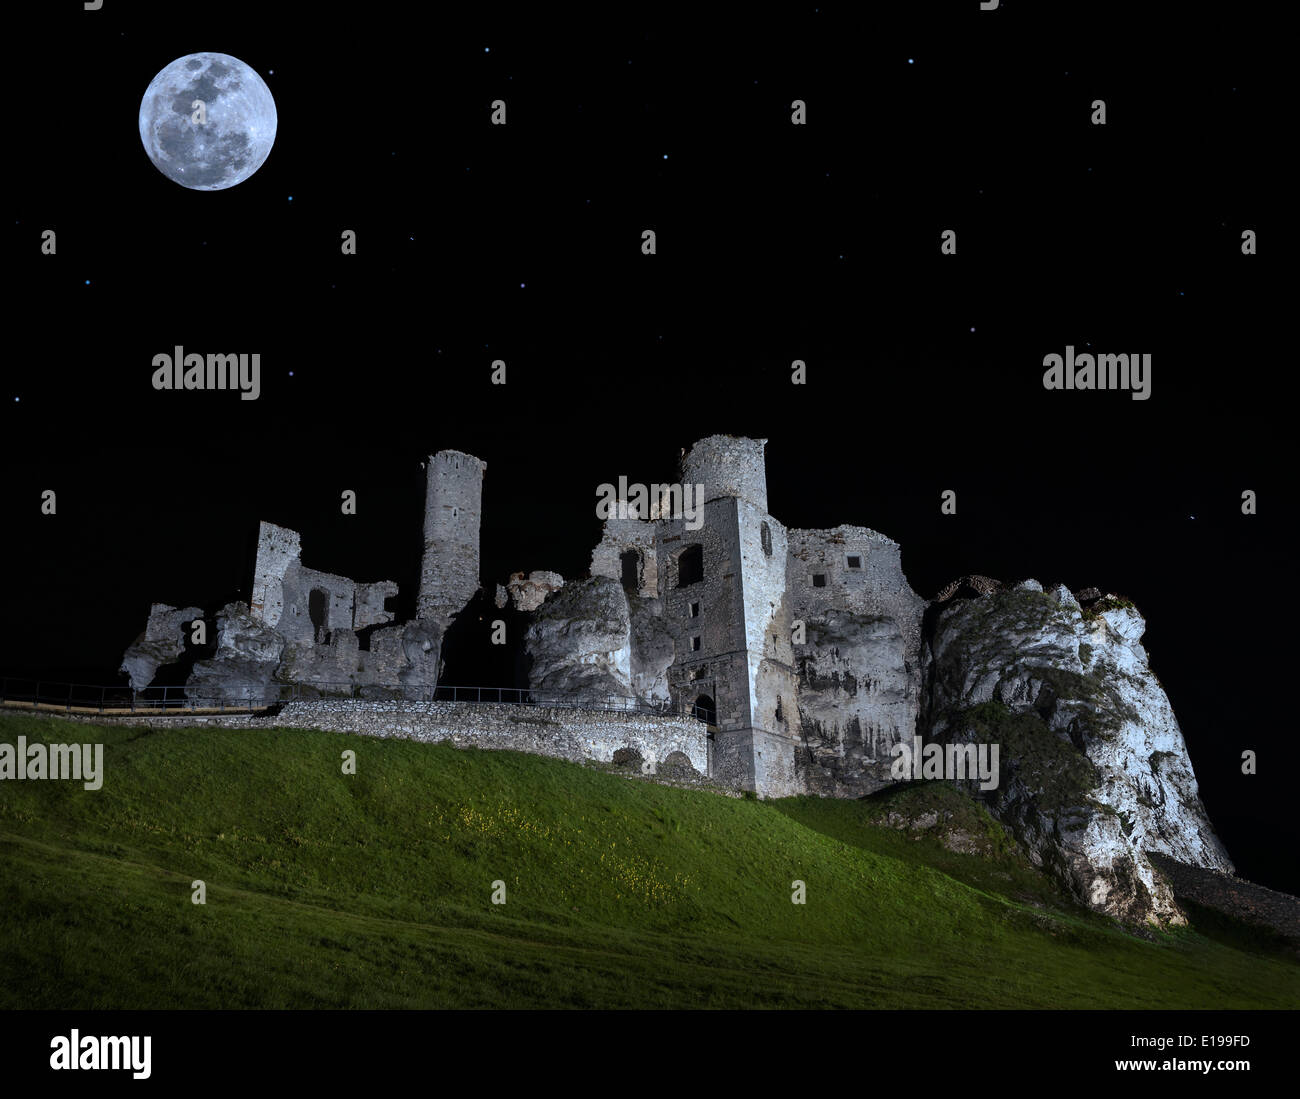 Full moon above ruins of castle, Ogrodzieniec, Poland. - Stock Image